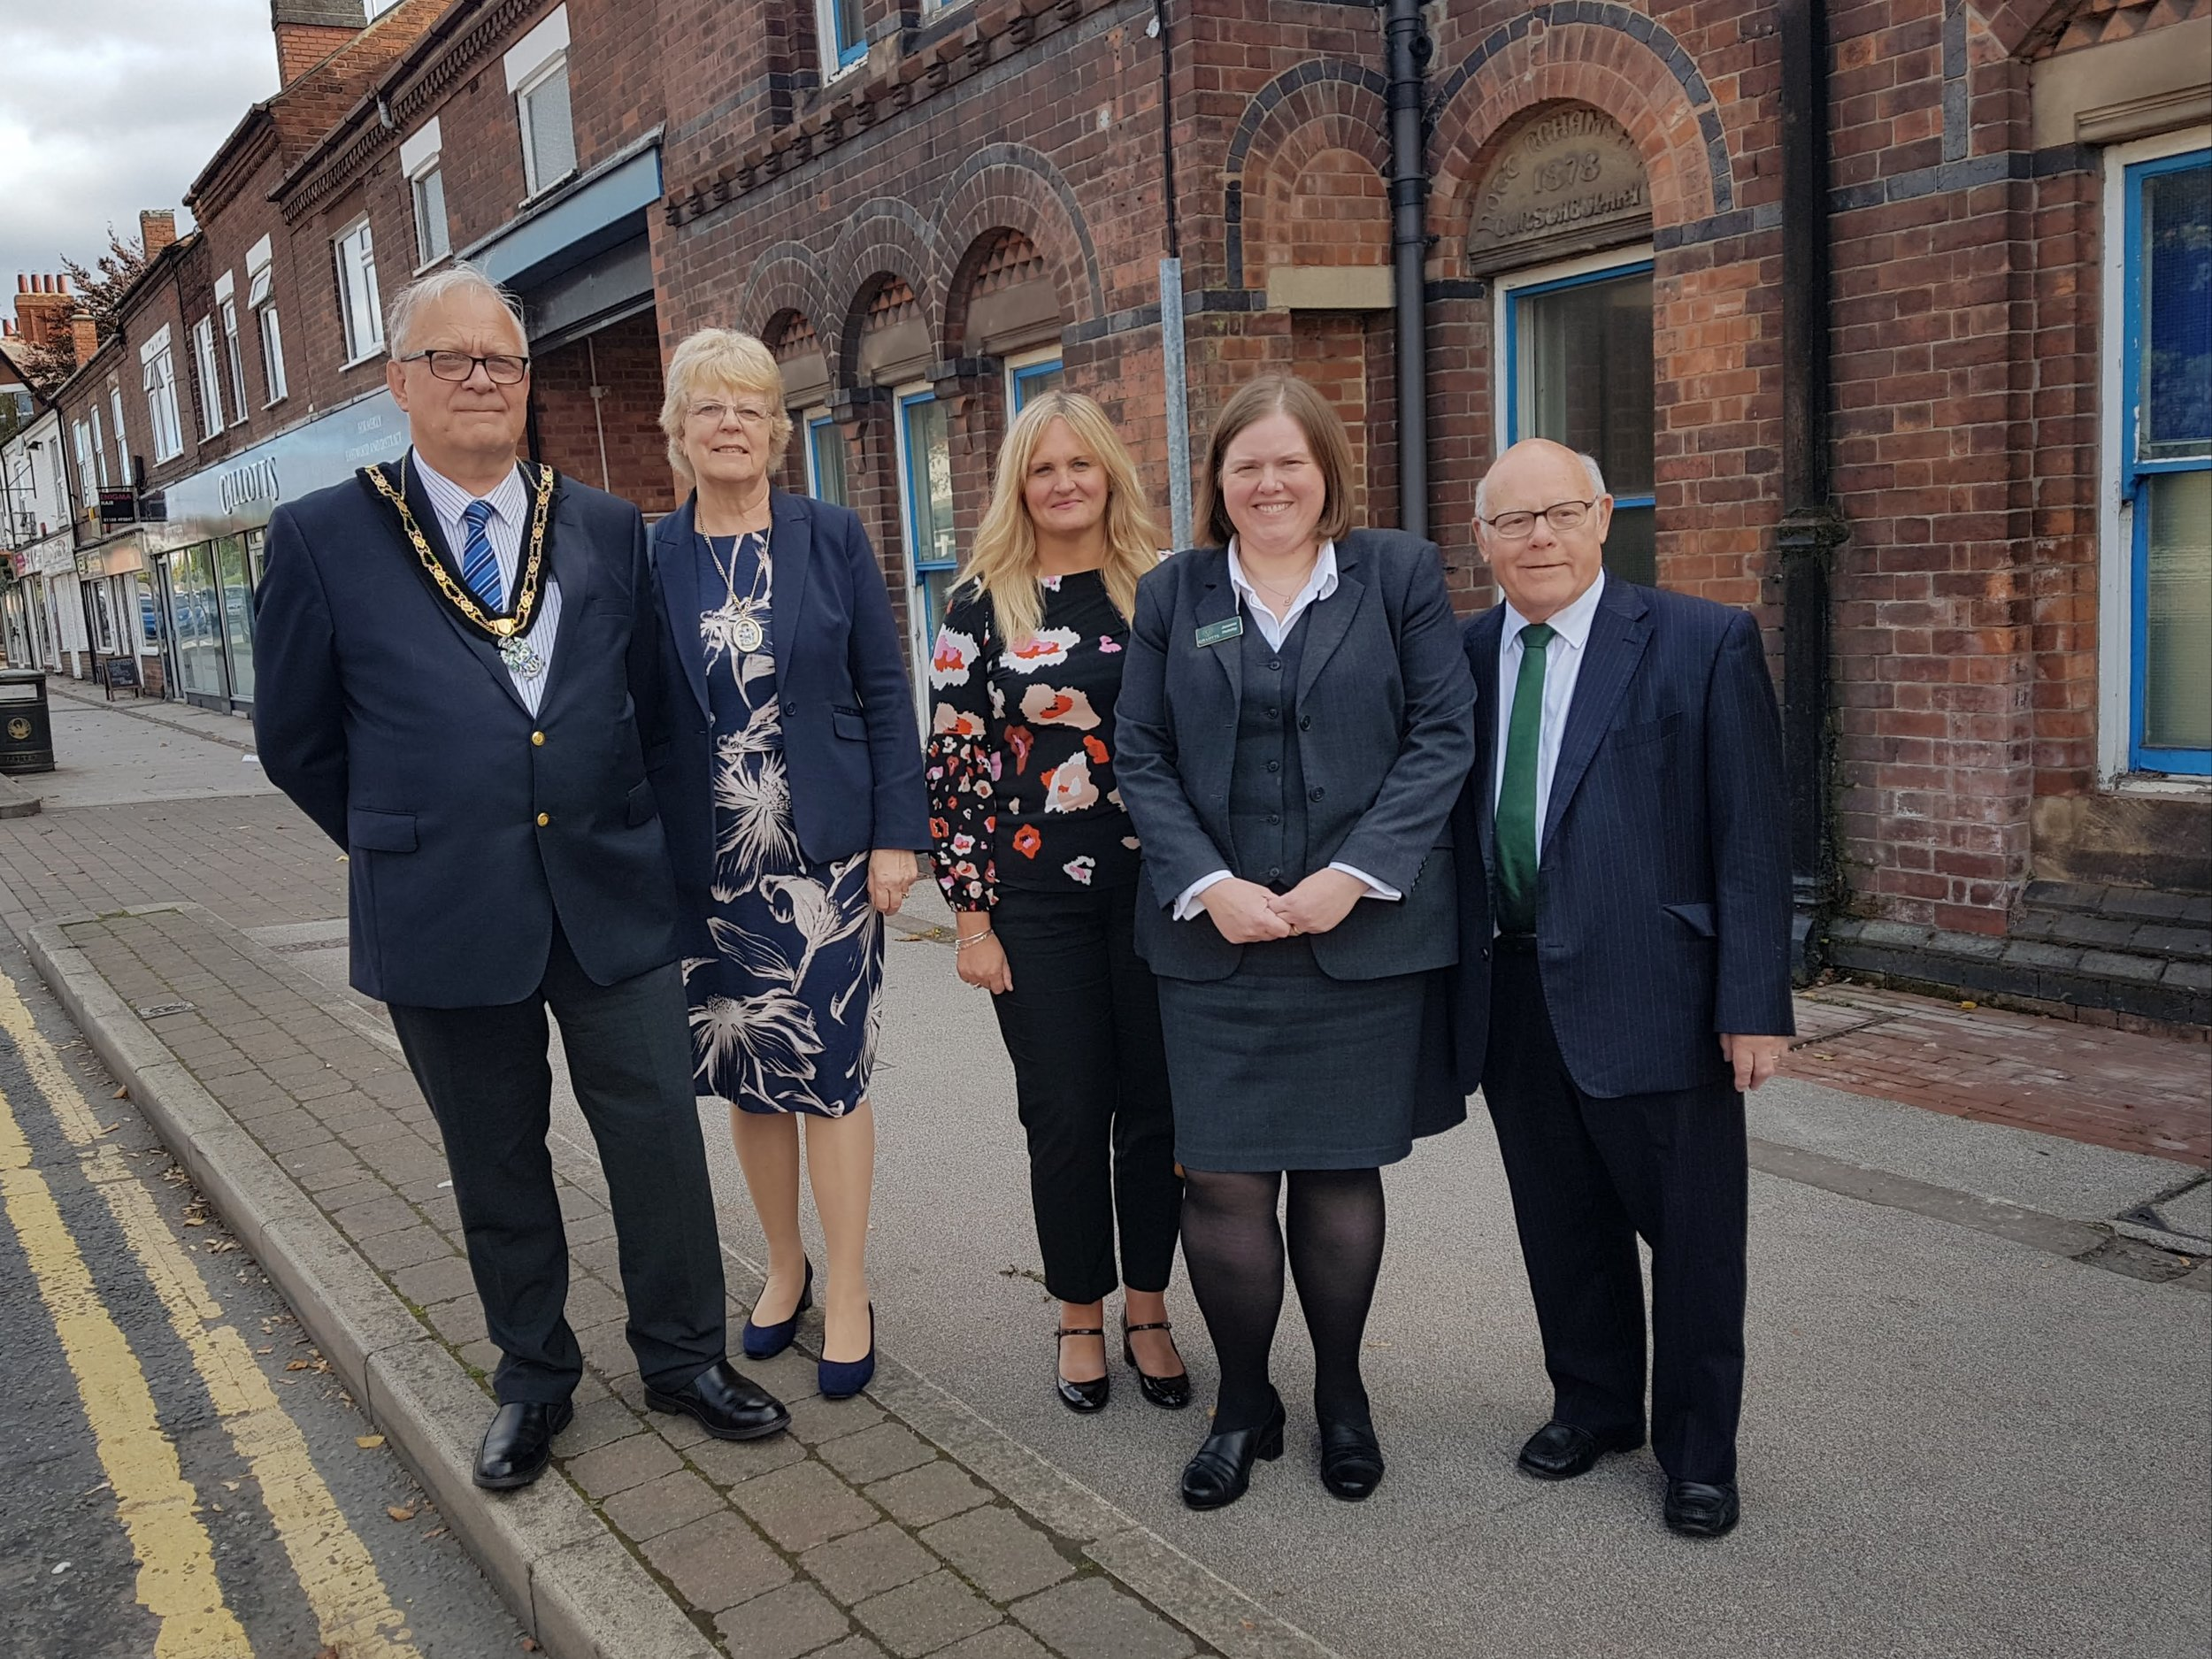 From left, Councillor Derek Burnett, Mayor of Broxtowe, his wife, Sonia, Tracy Turner, business manager at Barclays, and Joanne and Barry Hutsby, partners in Gillotts Funeral Directors, outside Eastwood Police Station, which Gillotts has bought to enable the company to expand its headquarters. Penguin PR: public relations, media and communications